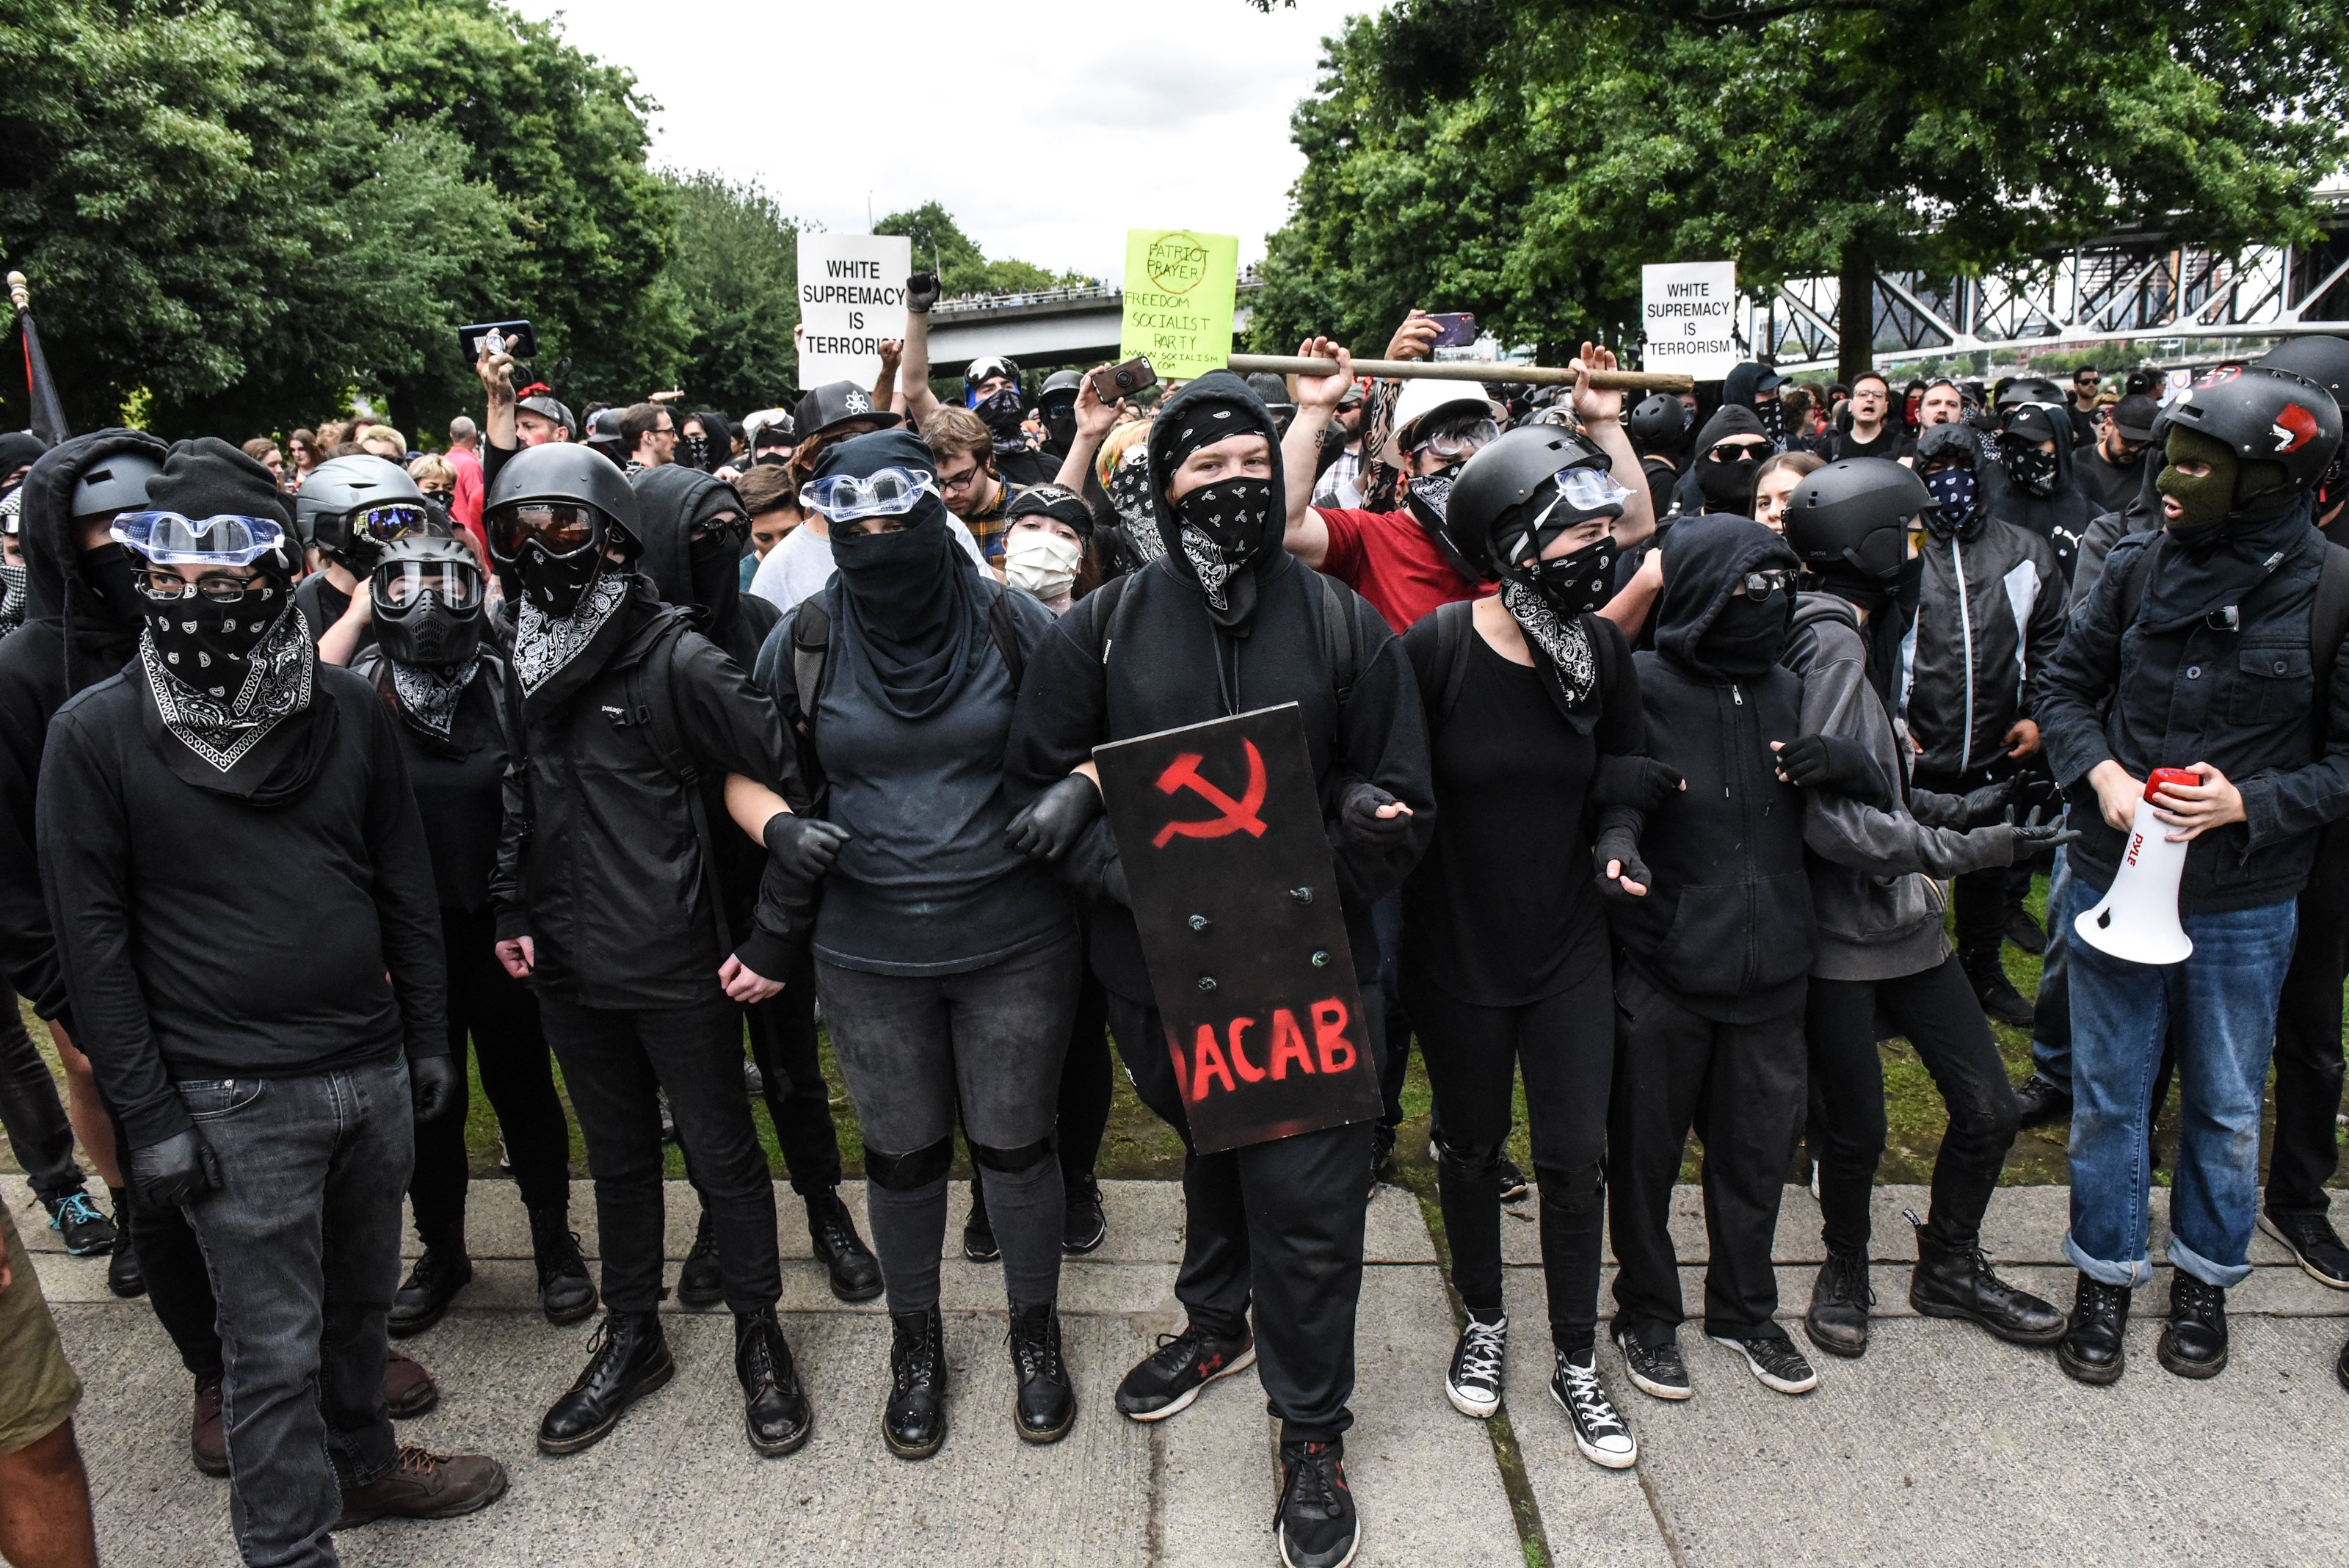 PORTLAND, OR - AUGUST 17: Members of Antifa line up during an alt-right rally on August 17, 2019 in Portland, Oregon. Anti-fascism demonstrators gathered to counter-protest a rally held by far-right, extremist groups. (Photo by Stephanie Keith/Getty Images)